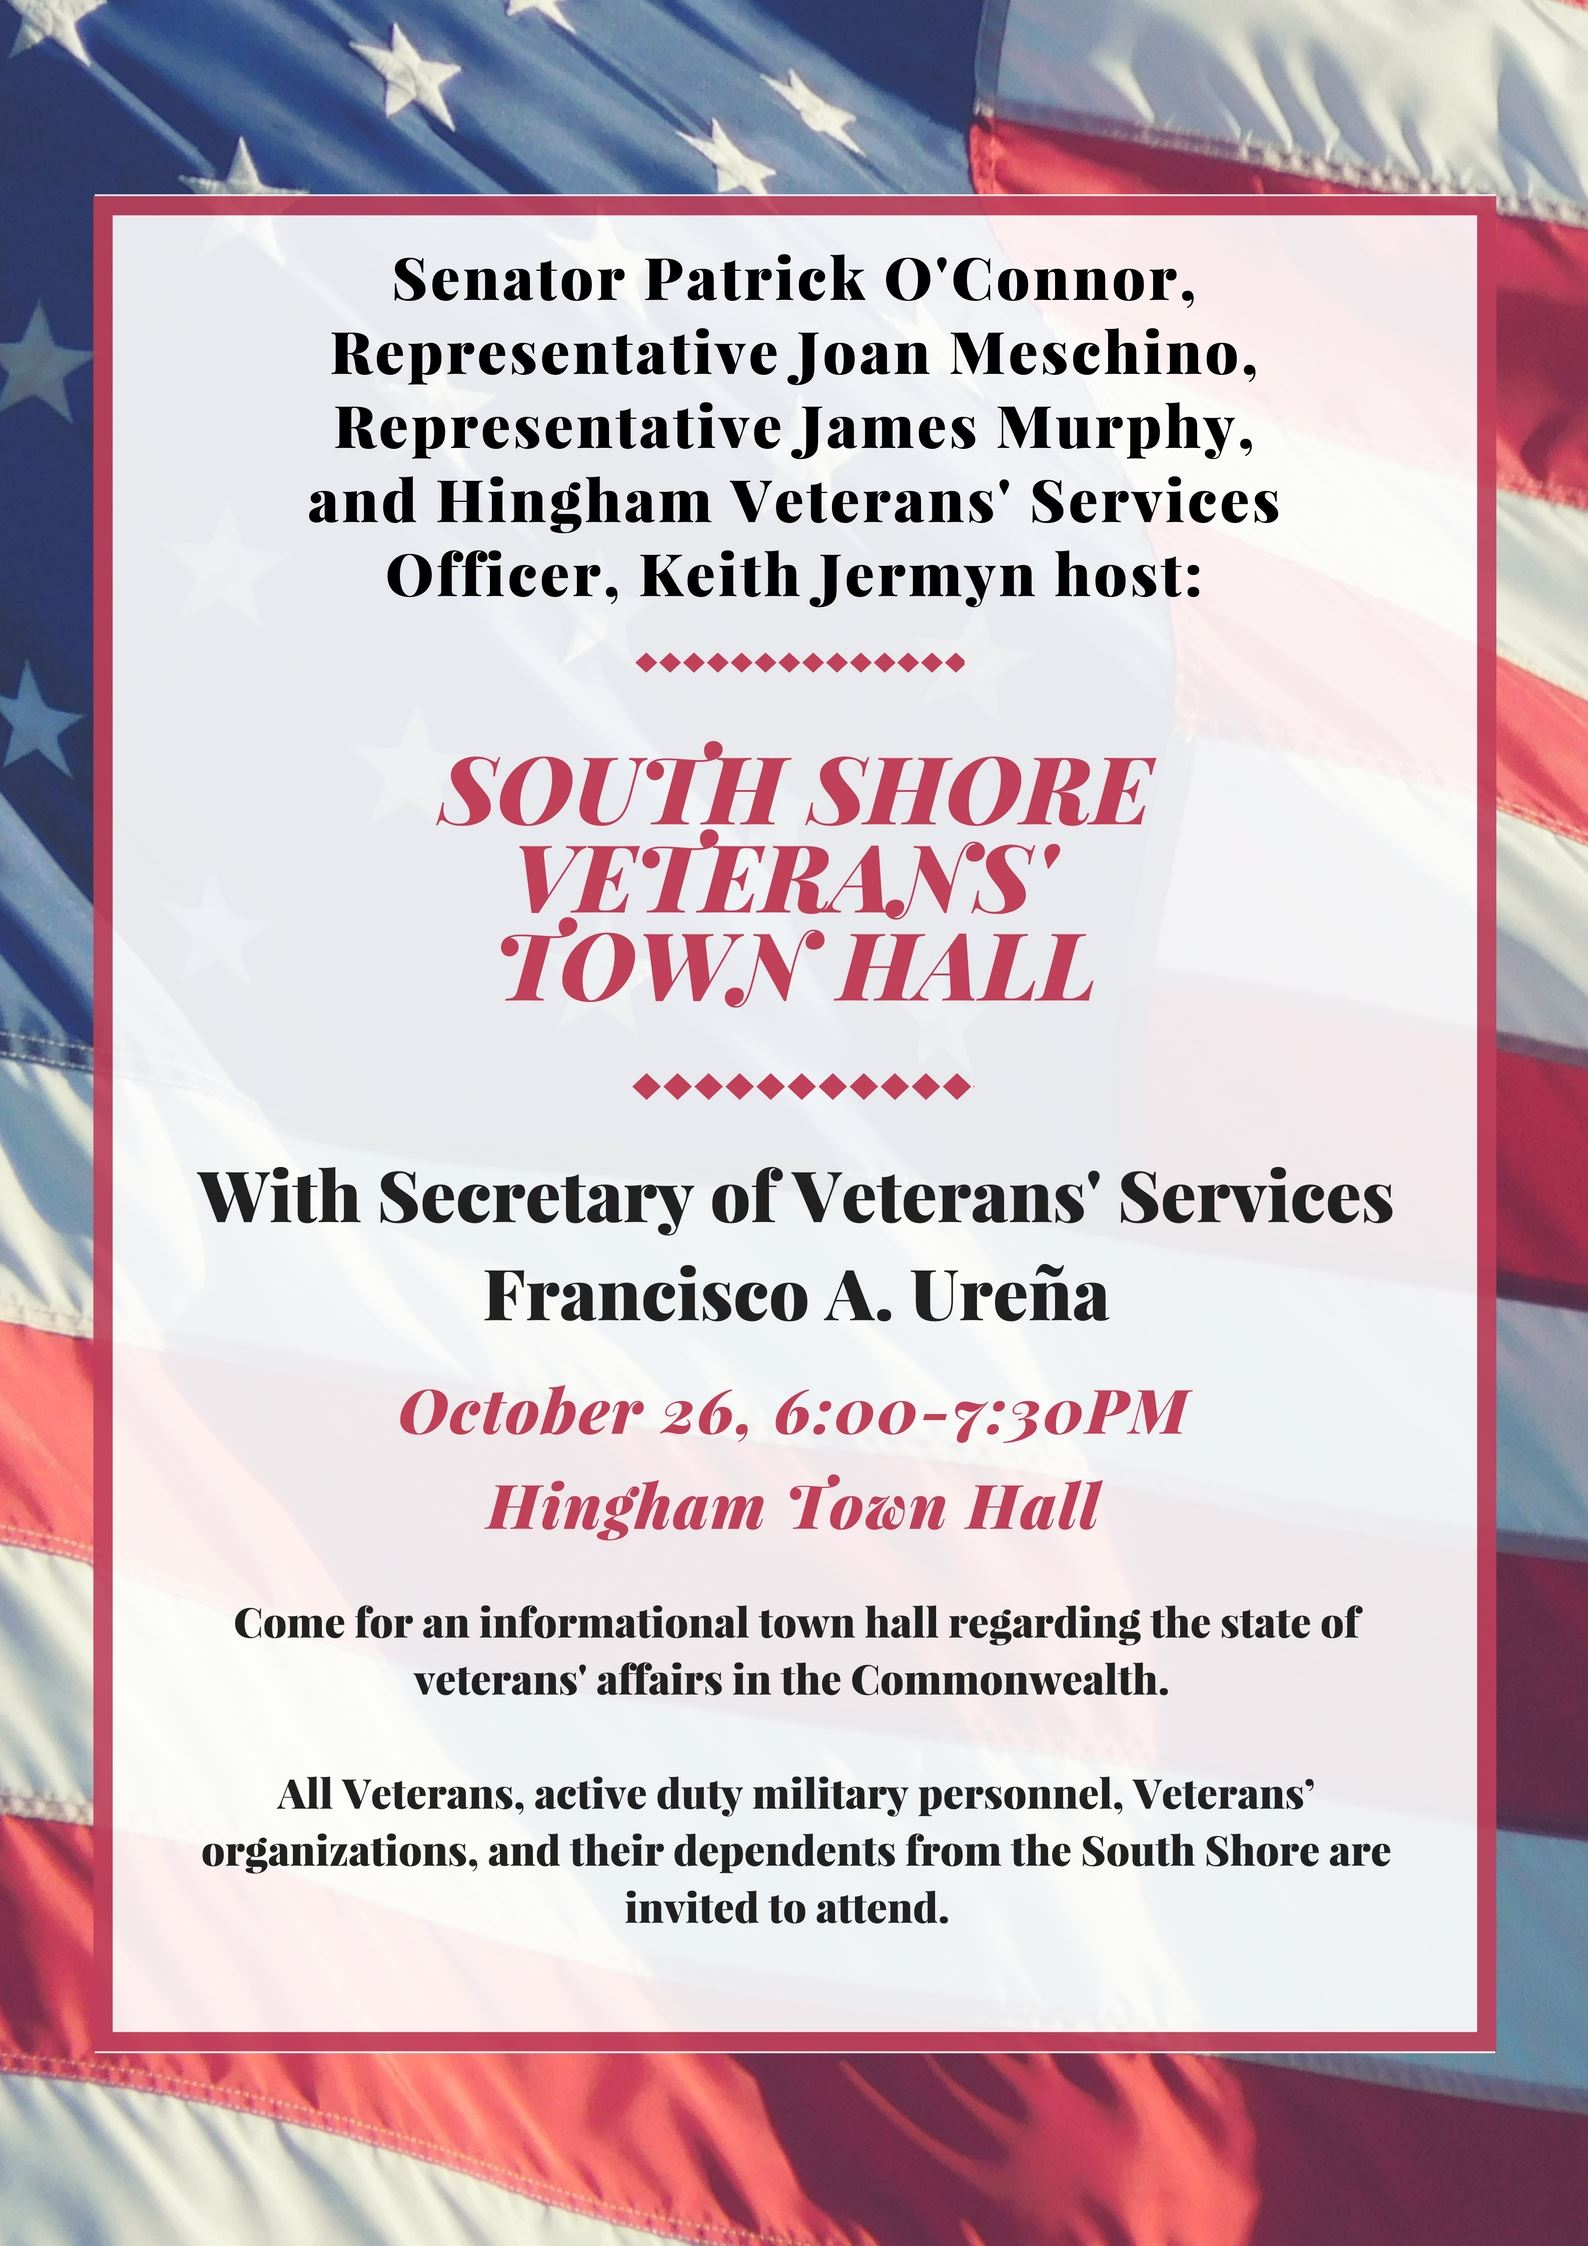 Veterans Town Hall Flyer